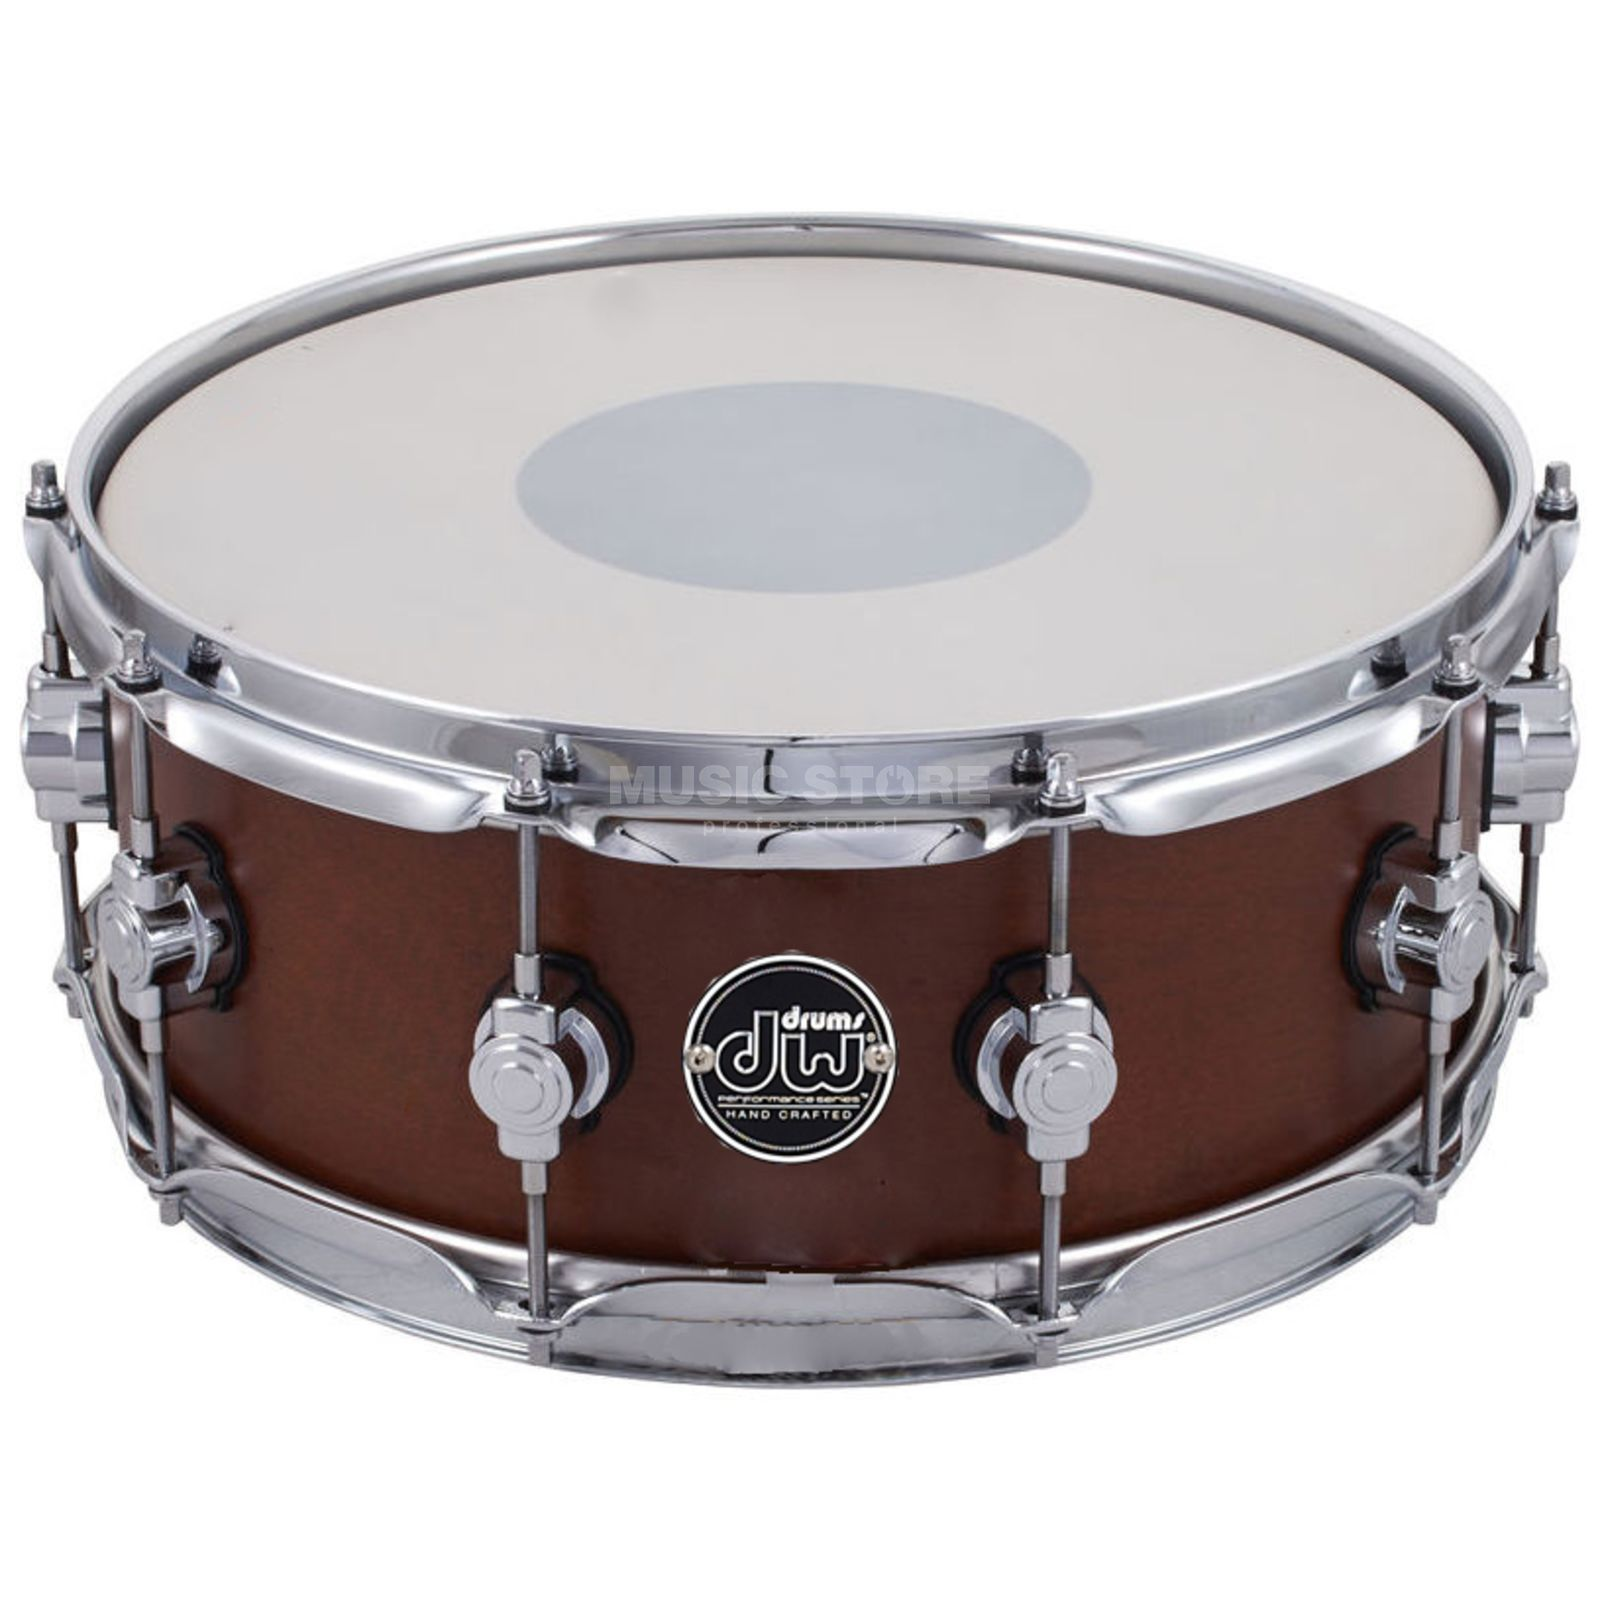 "Drum Workshop Performance Snare 14""x6,5"", Tobacco Produktbillede"